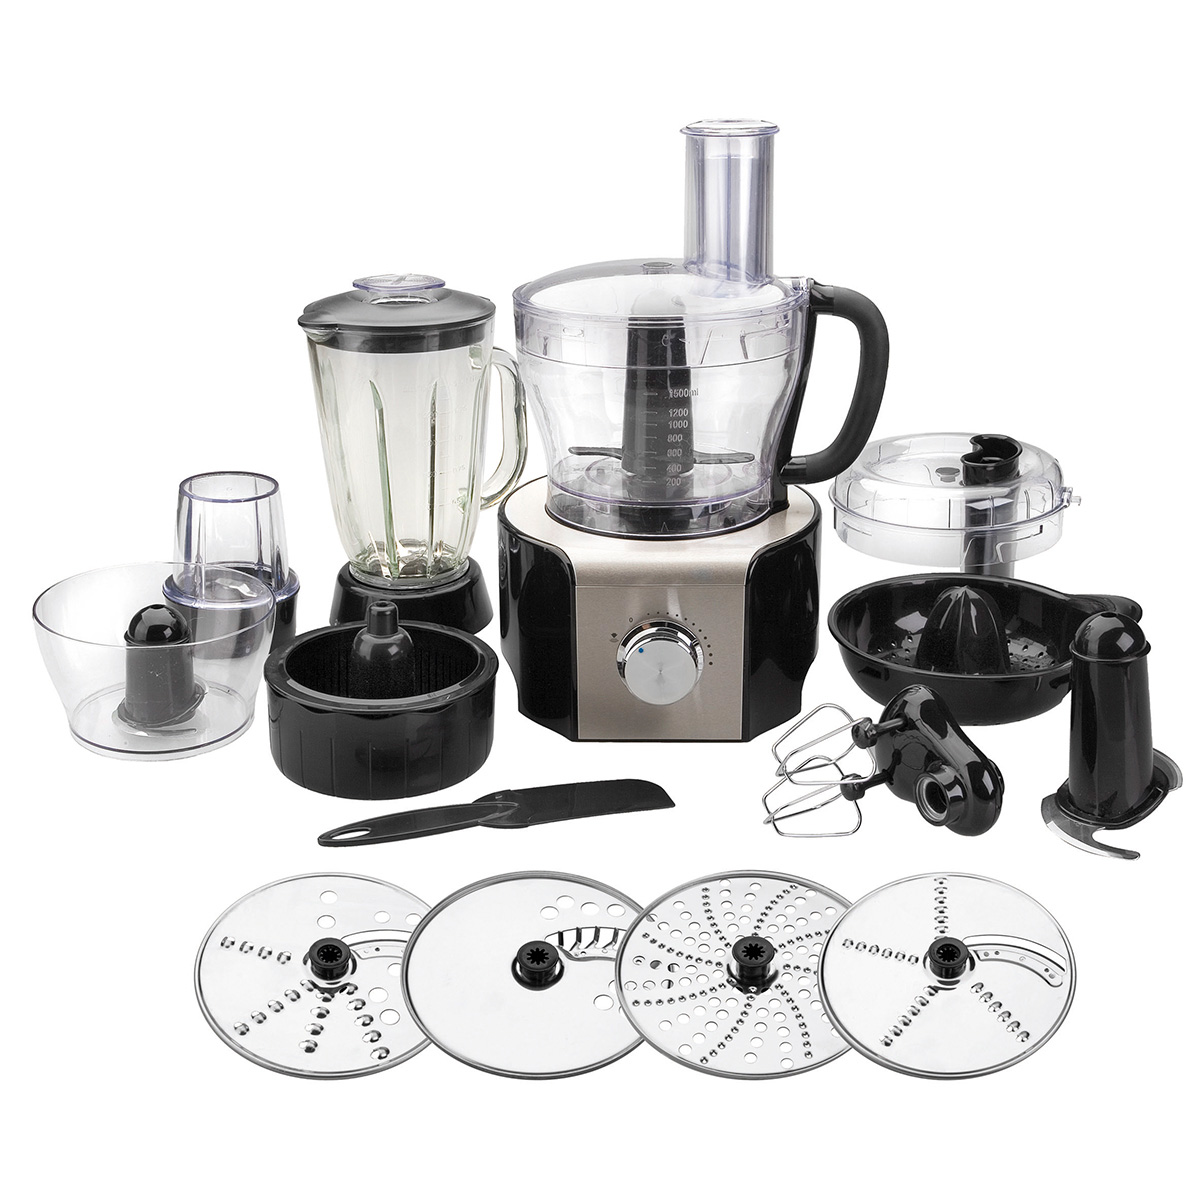 Image of   H. W. Larsen foodprocessor - Lacor - Stål/sort